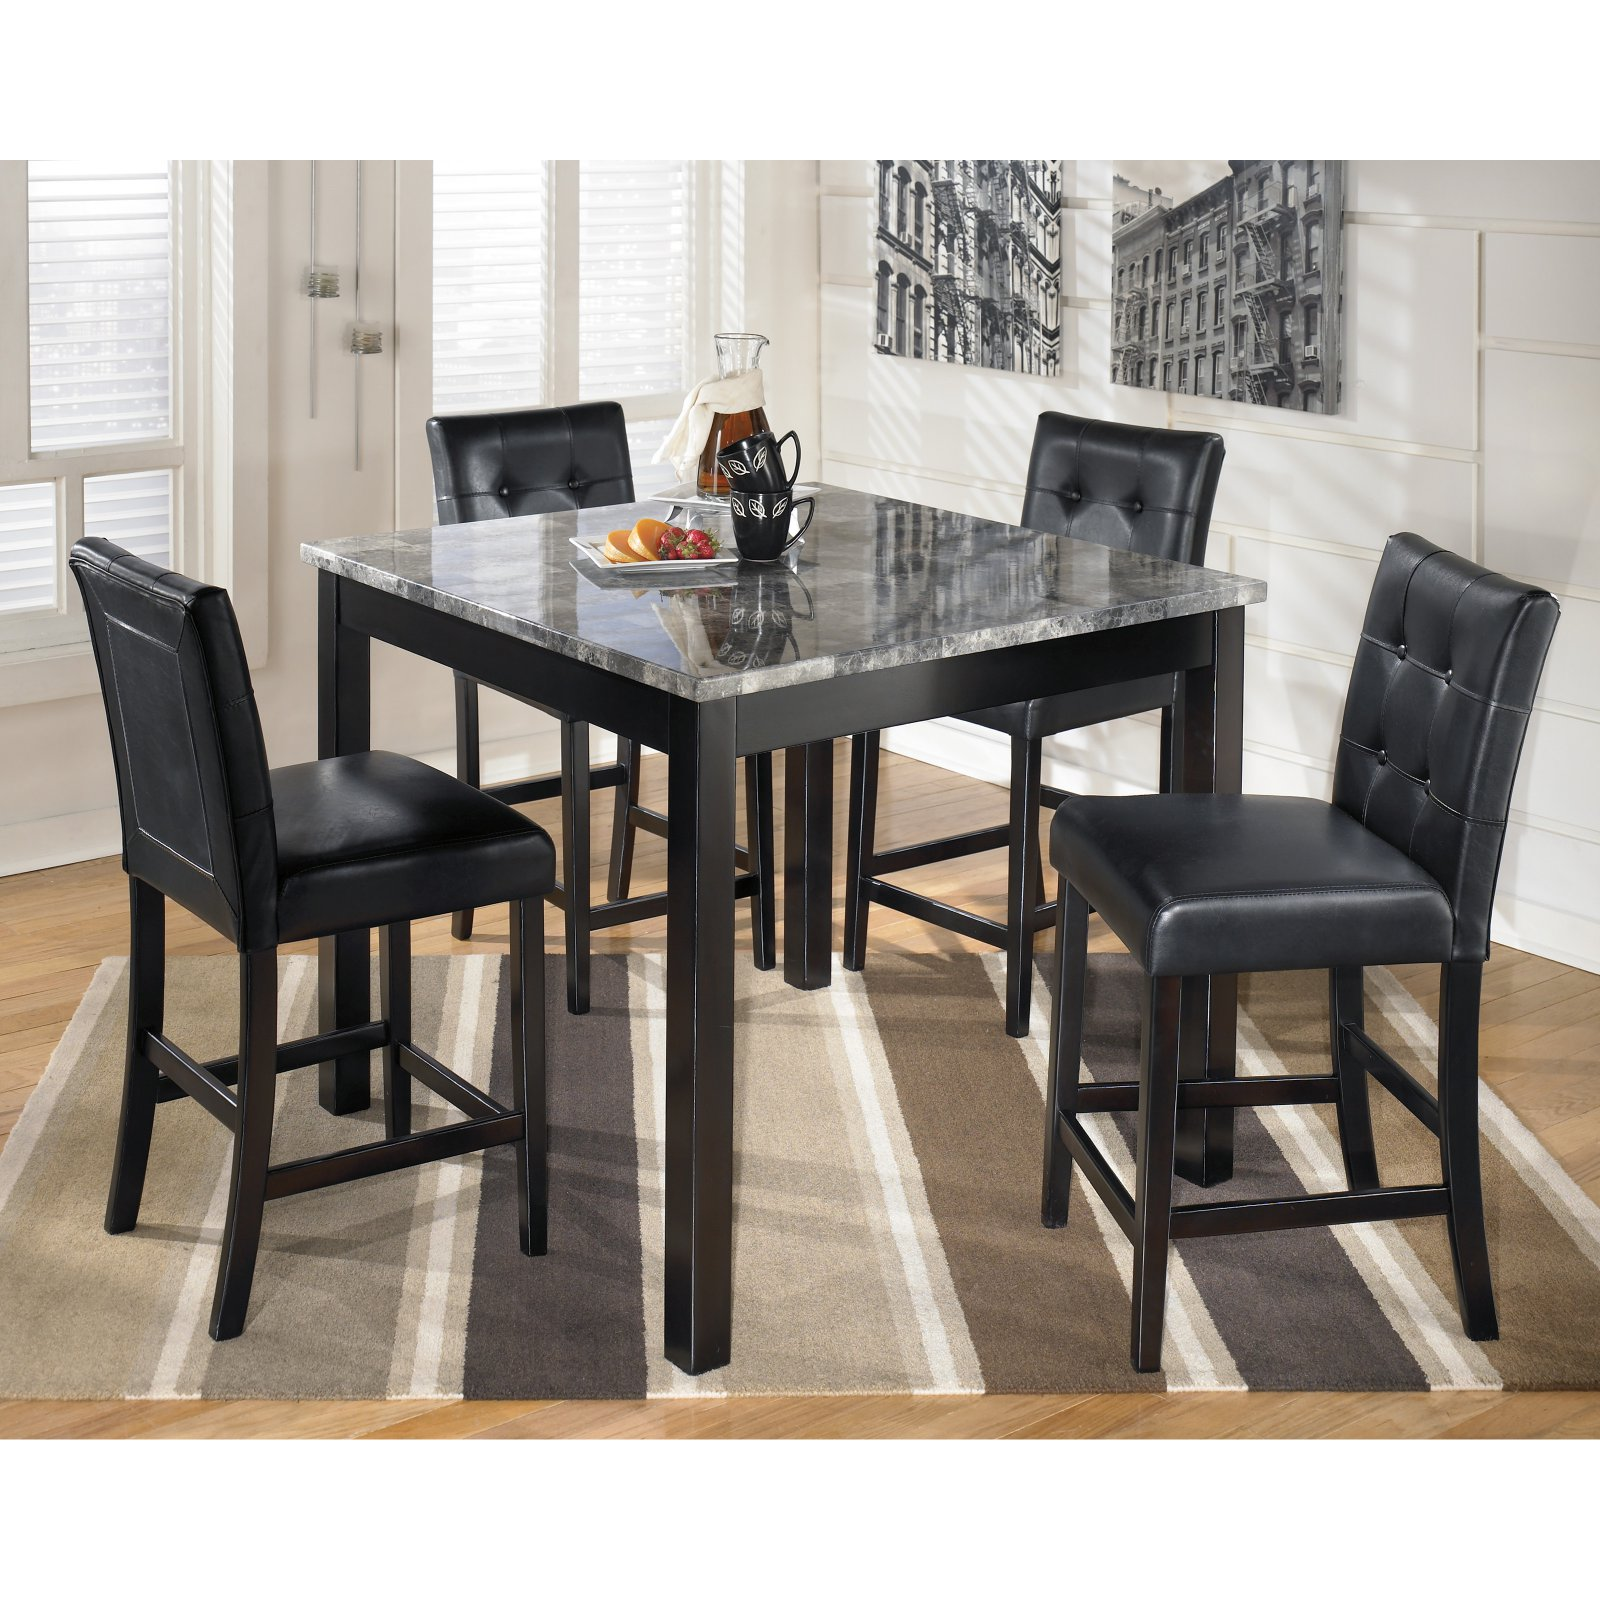 Signature Design by Ashley Maysville 5 Piece Counter Height Dining Table Set  sc 1 st  Walmart.com & Signature Design by Ashley Maysville 5 Piece Counter Height Dining ...